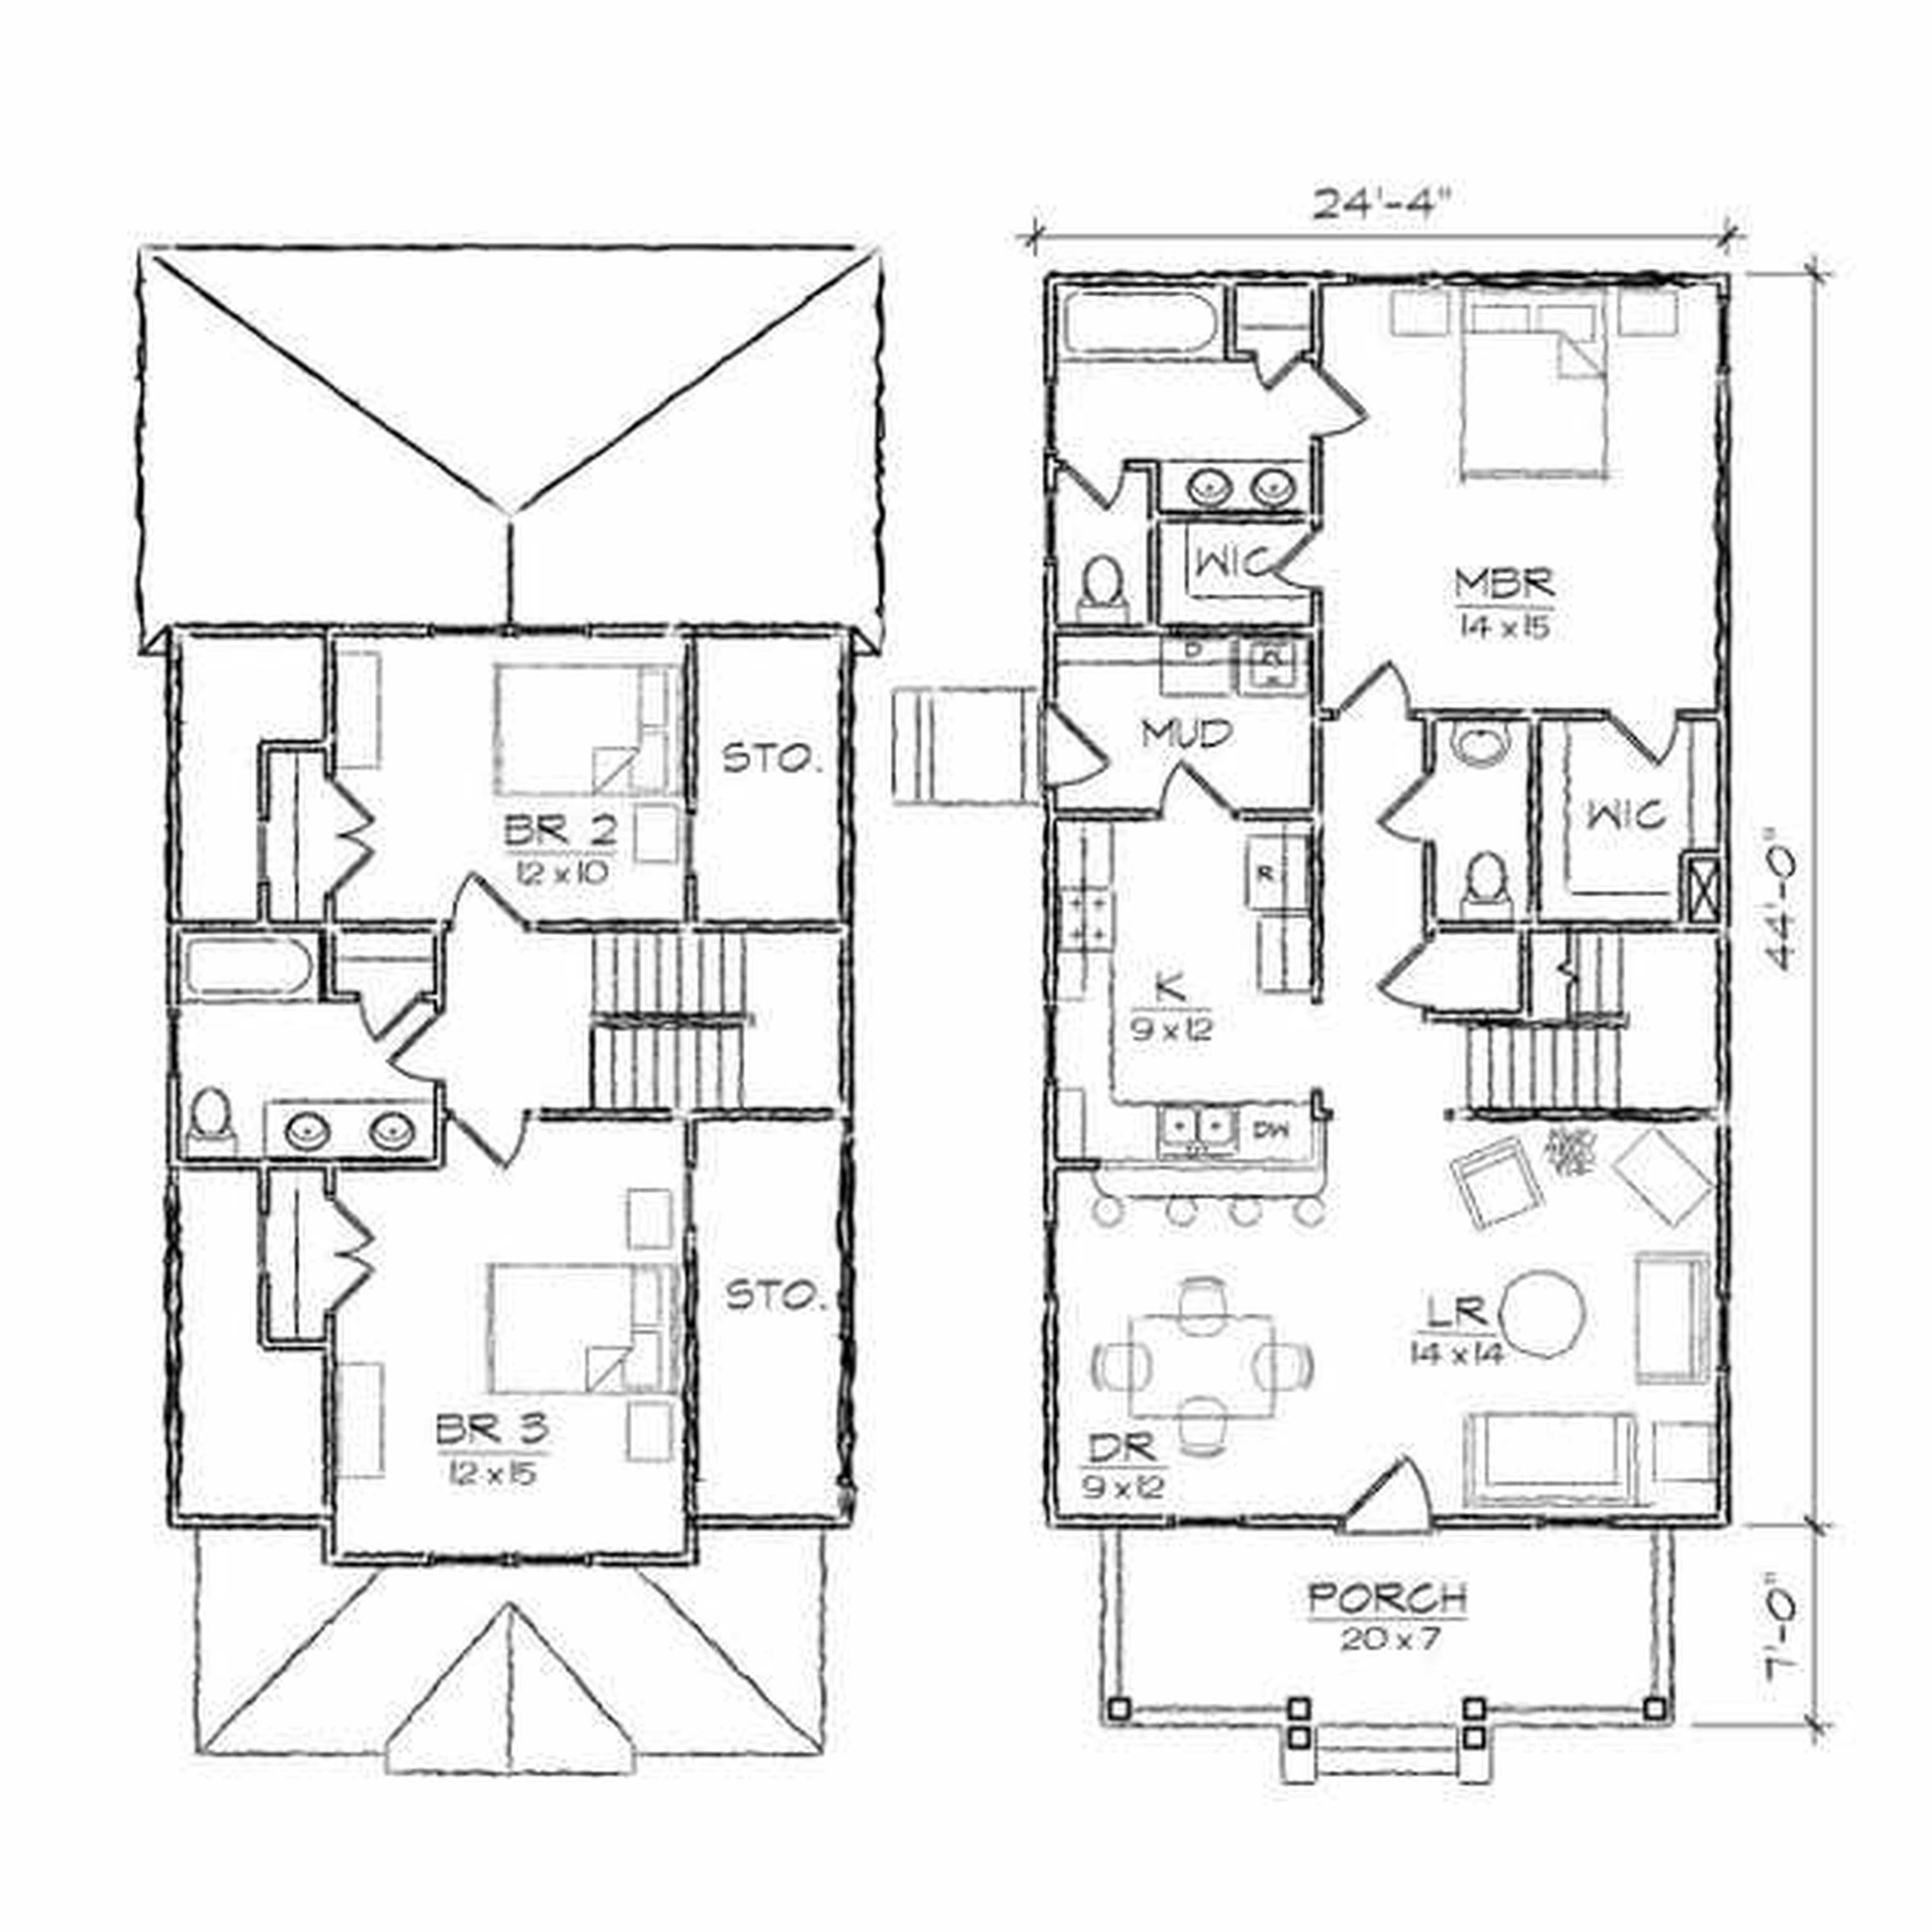 House Perspective Drawing At Getdrawings Com Free For Personal Use